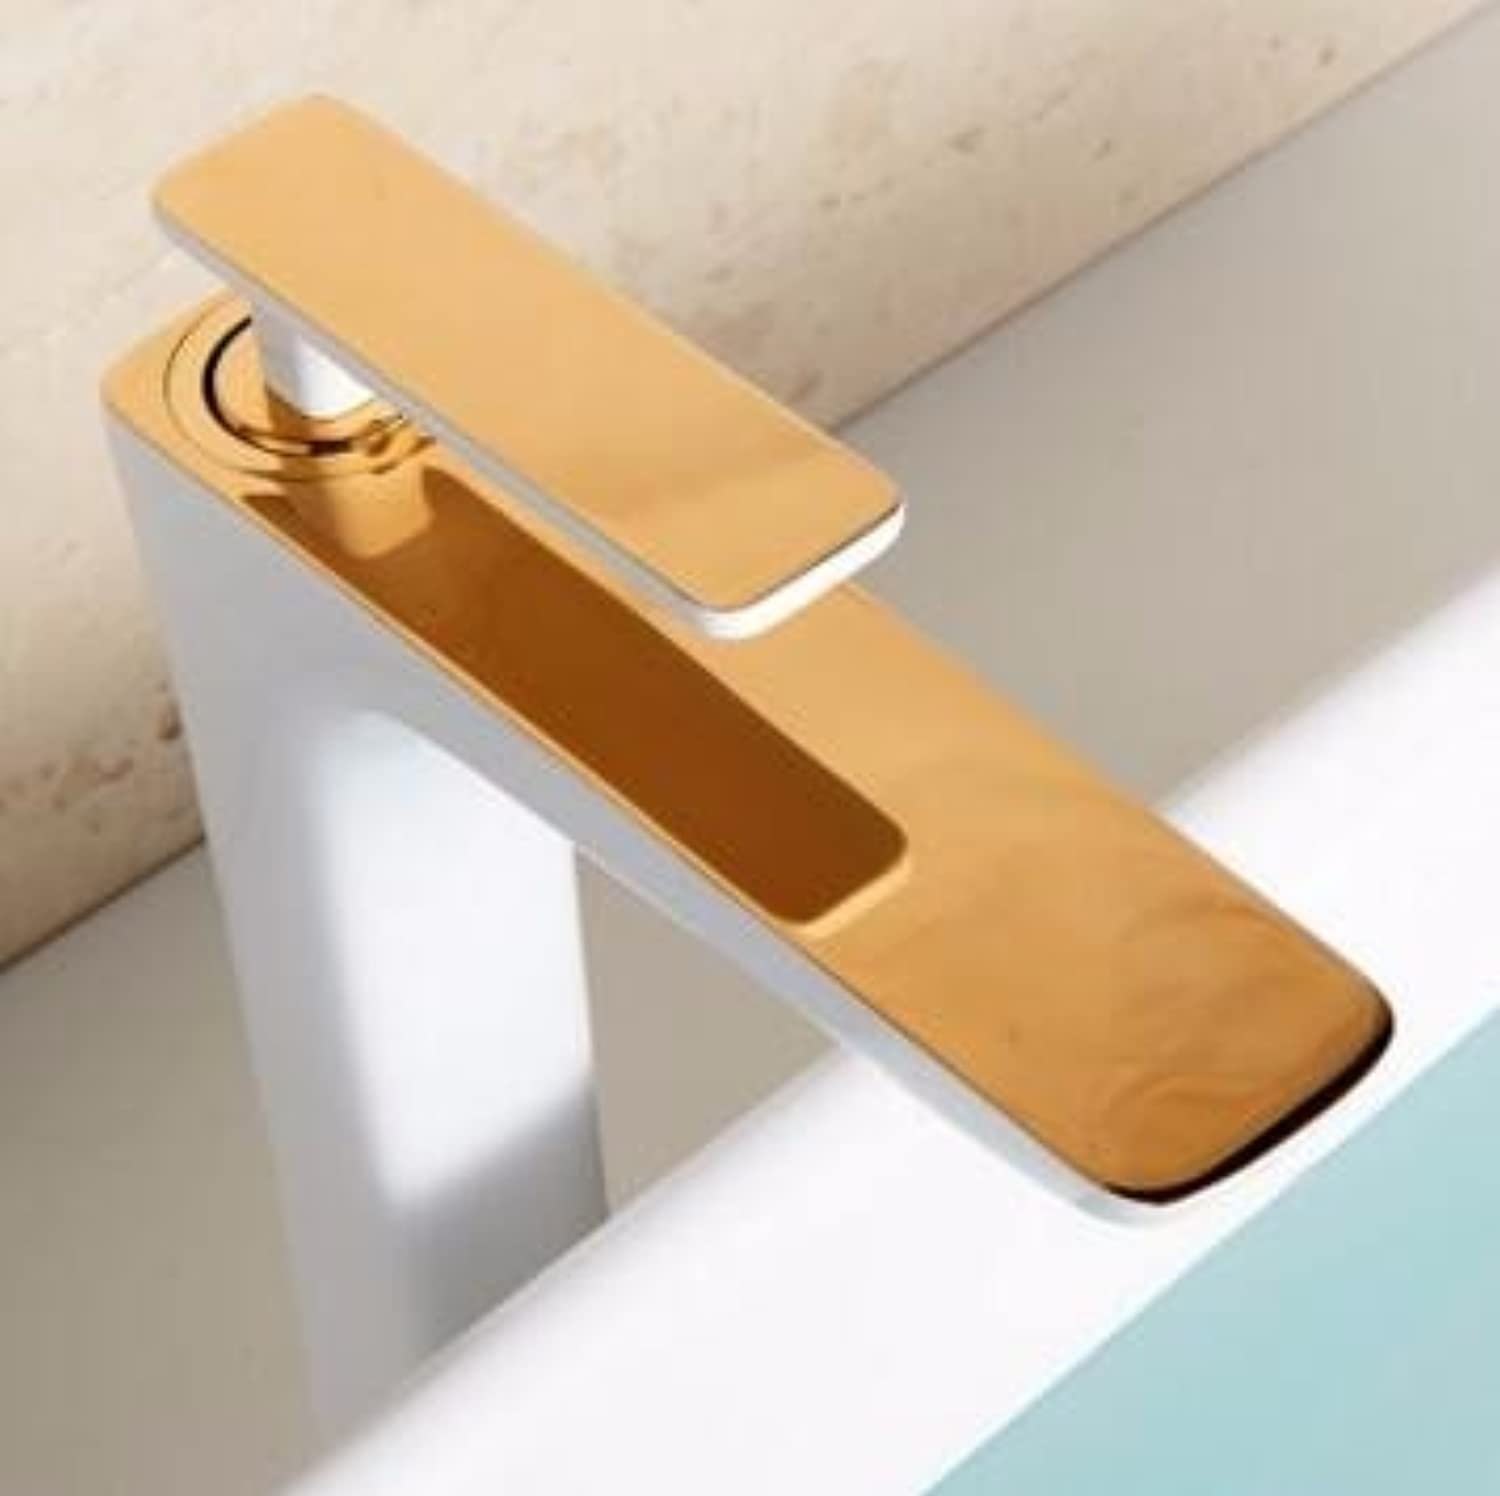 Qmpzg-White gold Taps?On The Modern Bath Basin Single Hole Tap?Hot And Cold-Copper Paint Faucet?Square, The High+White